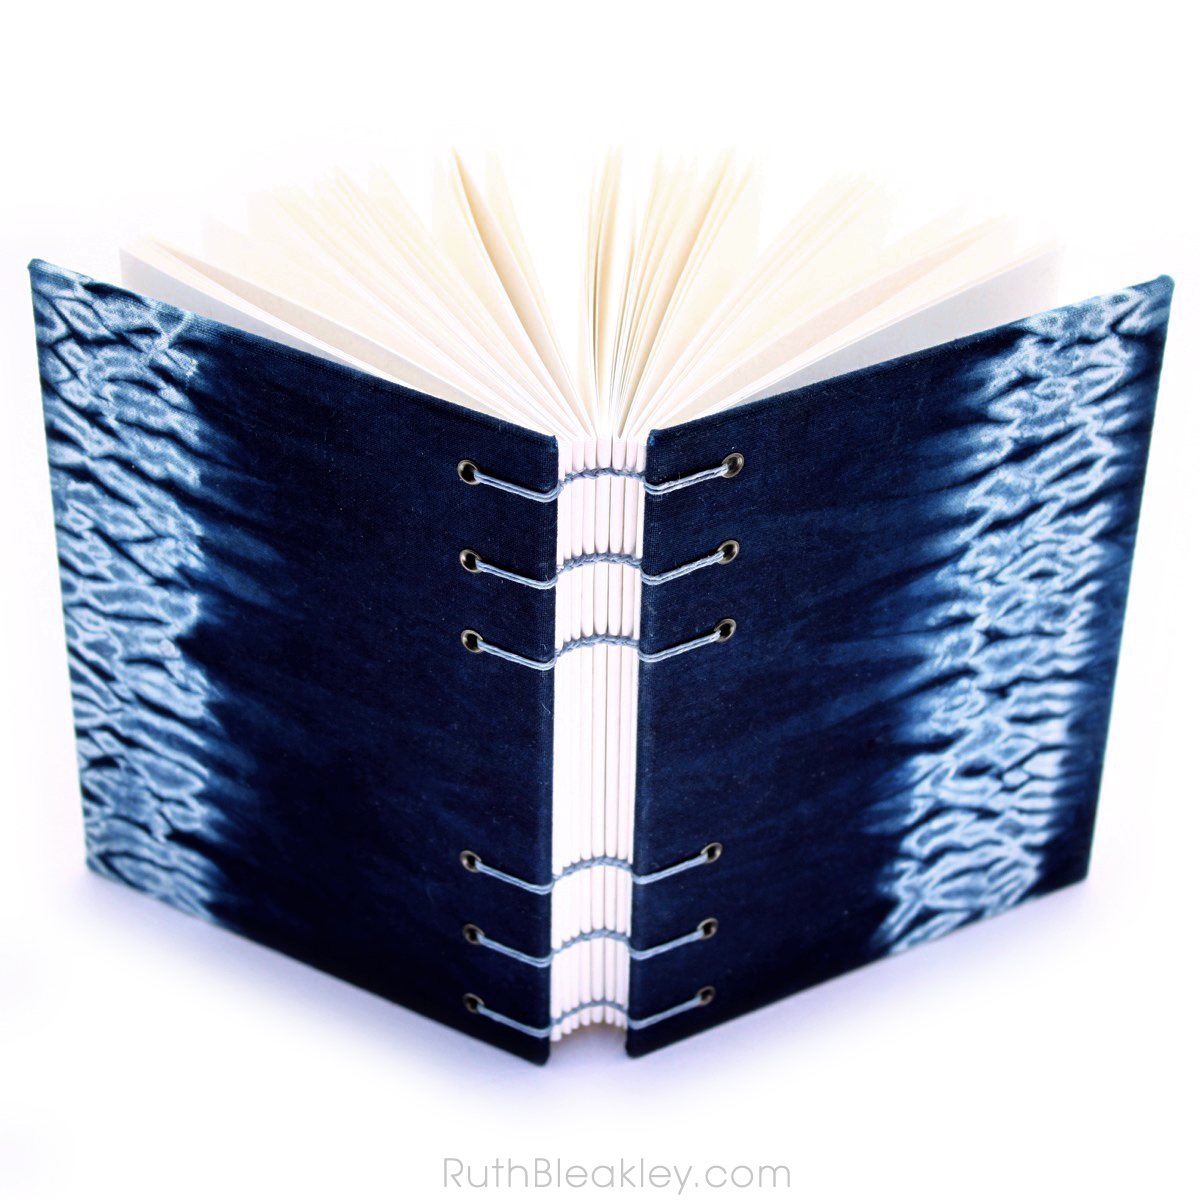 Indigo Shibori Tie Dye Journal - mokume woodgrain - Ruth Bleakley - 5